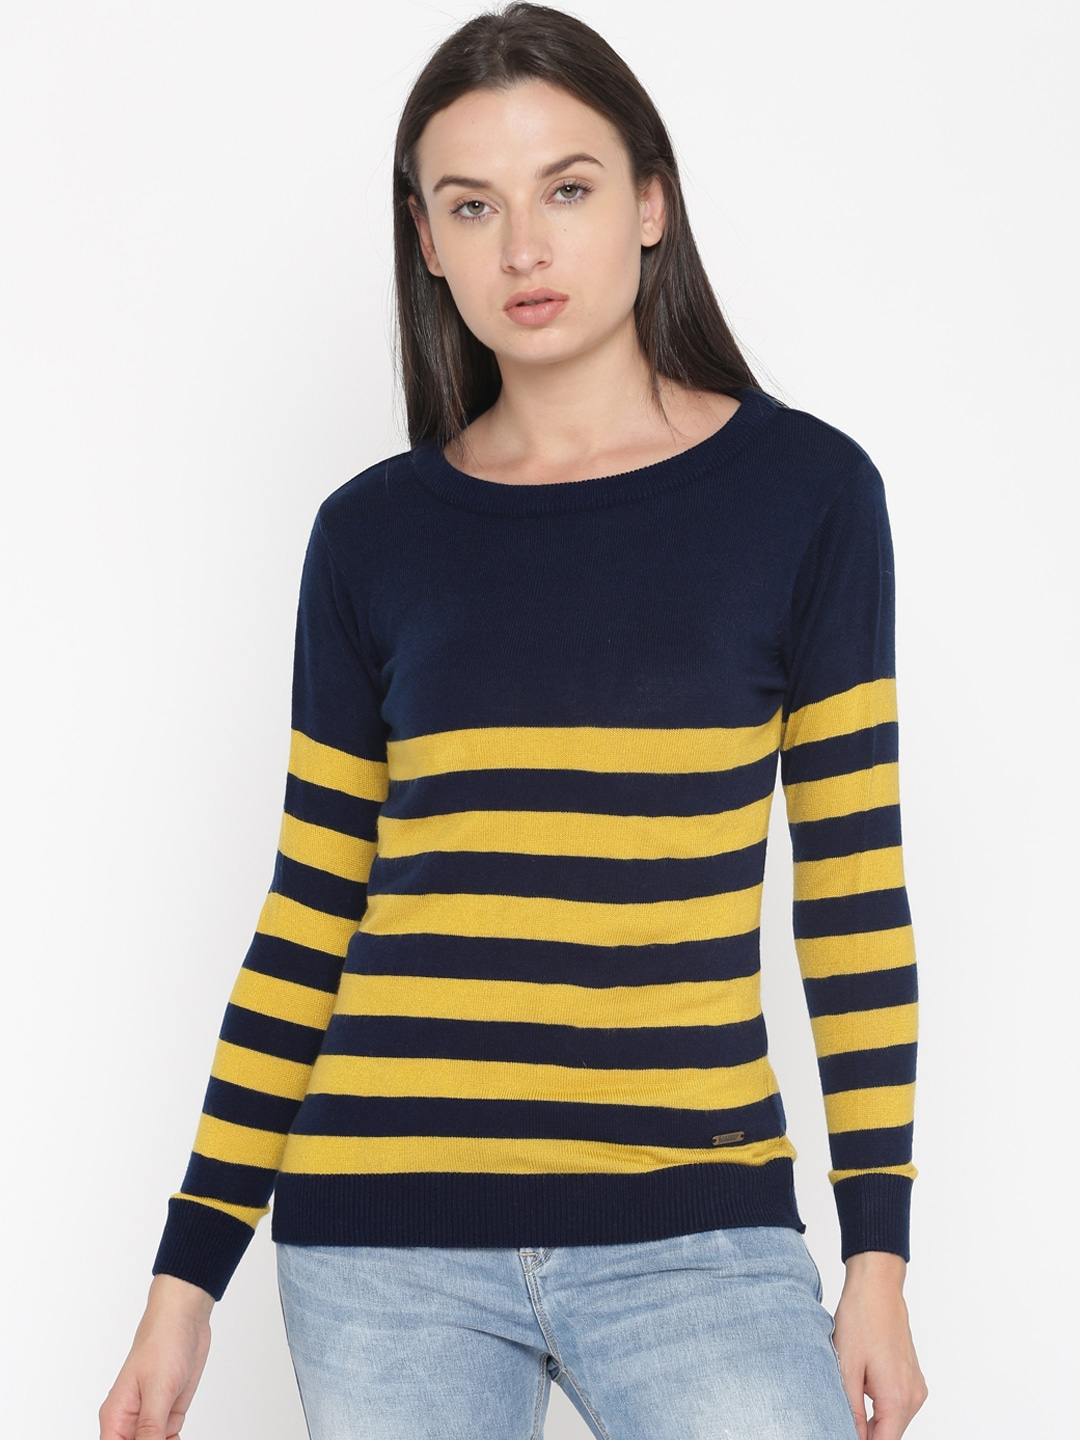 Sweaters for Women - Buy Womens Sweaters Online - Myntra